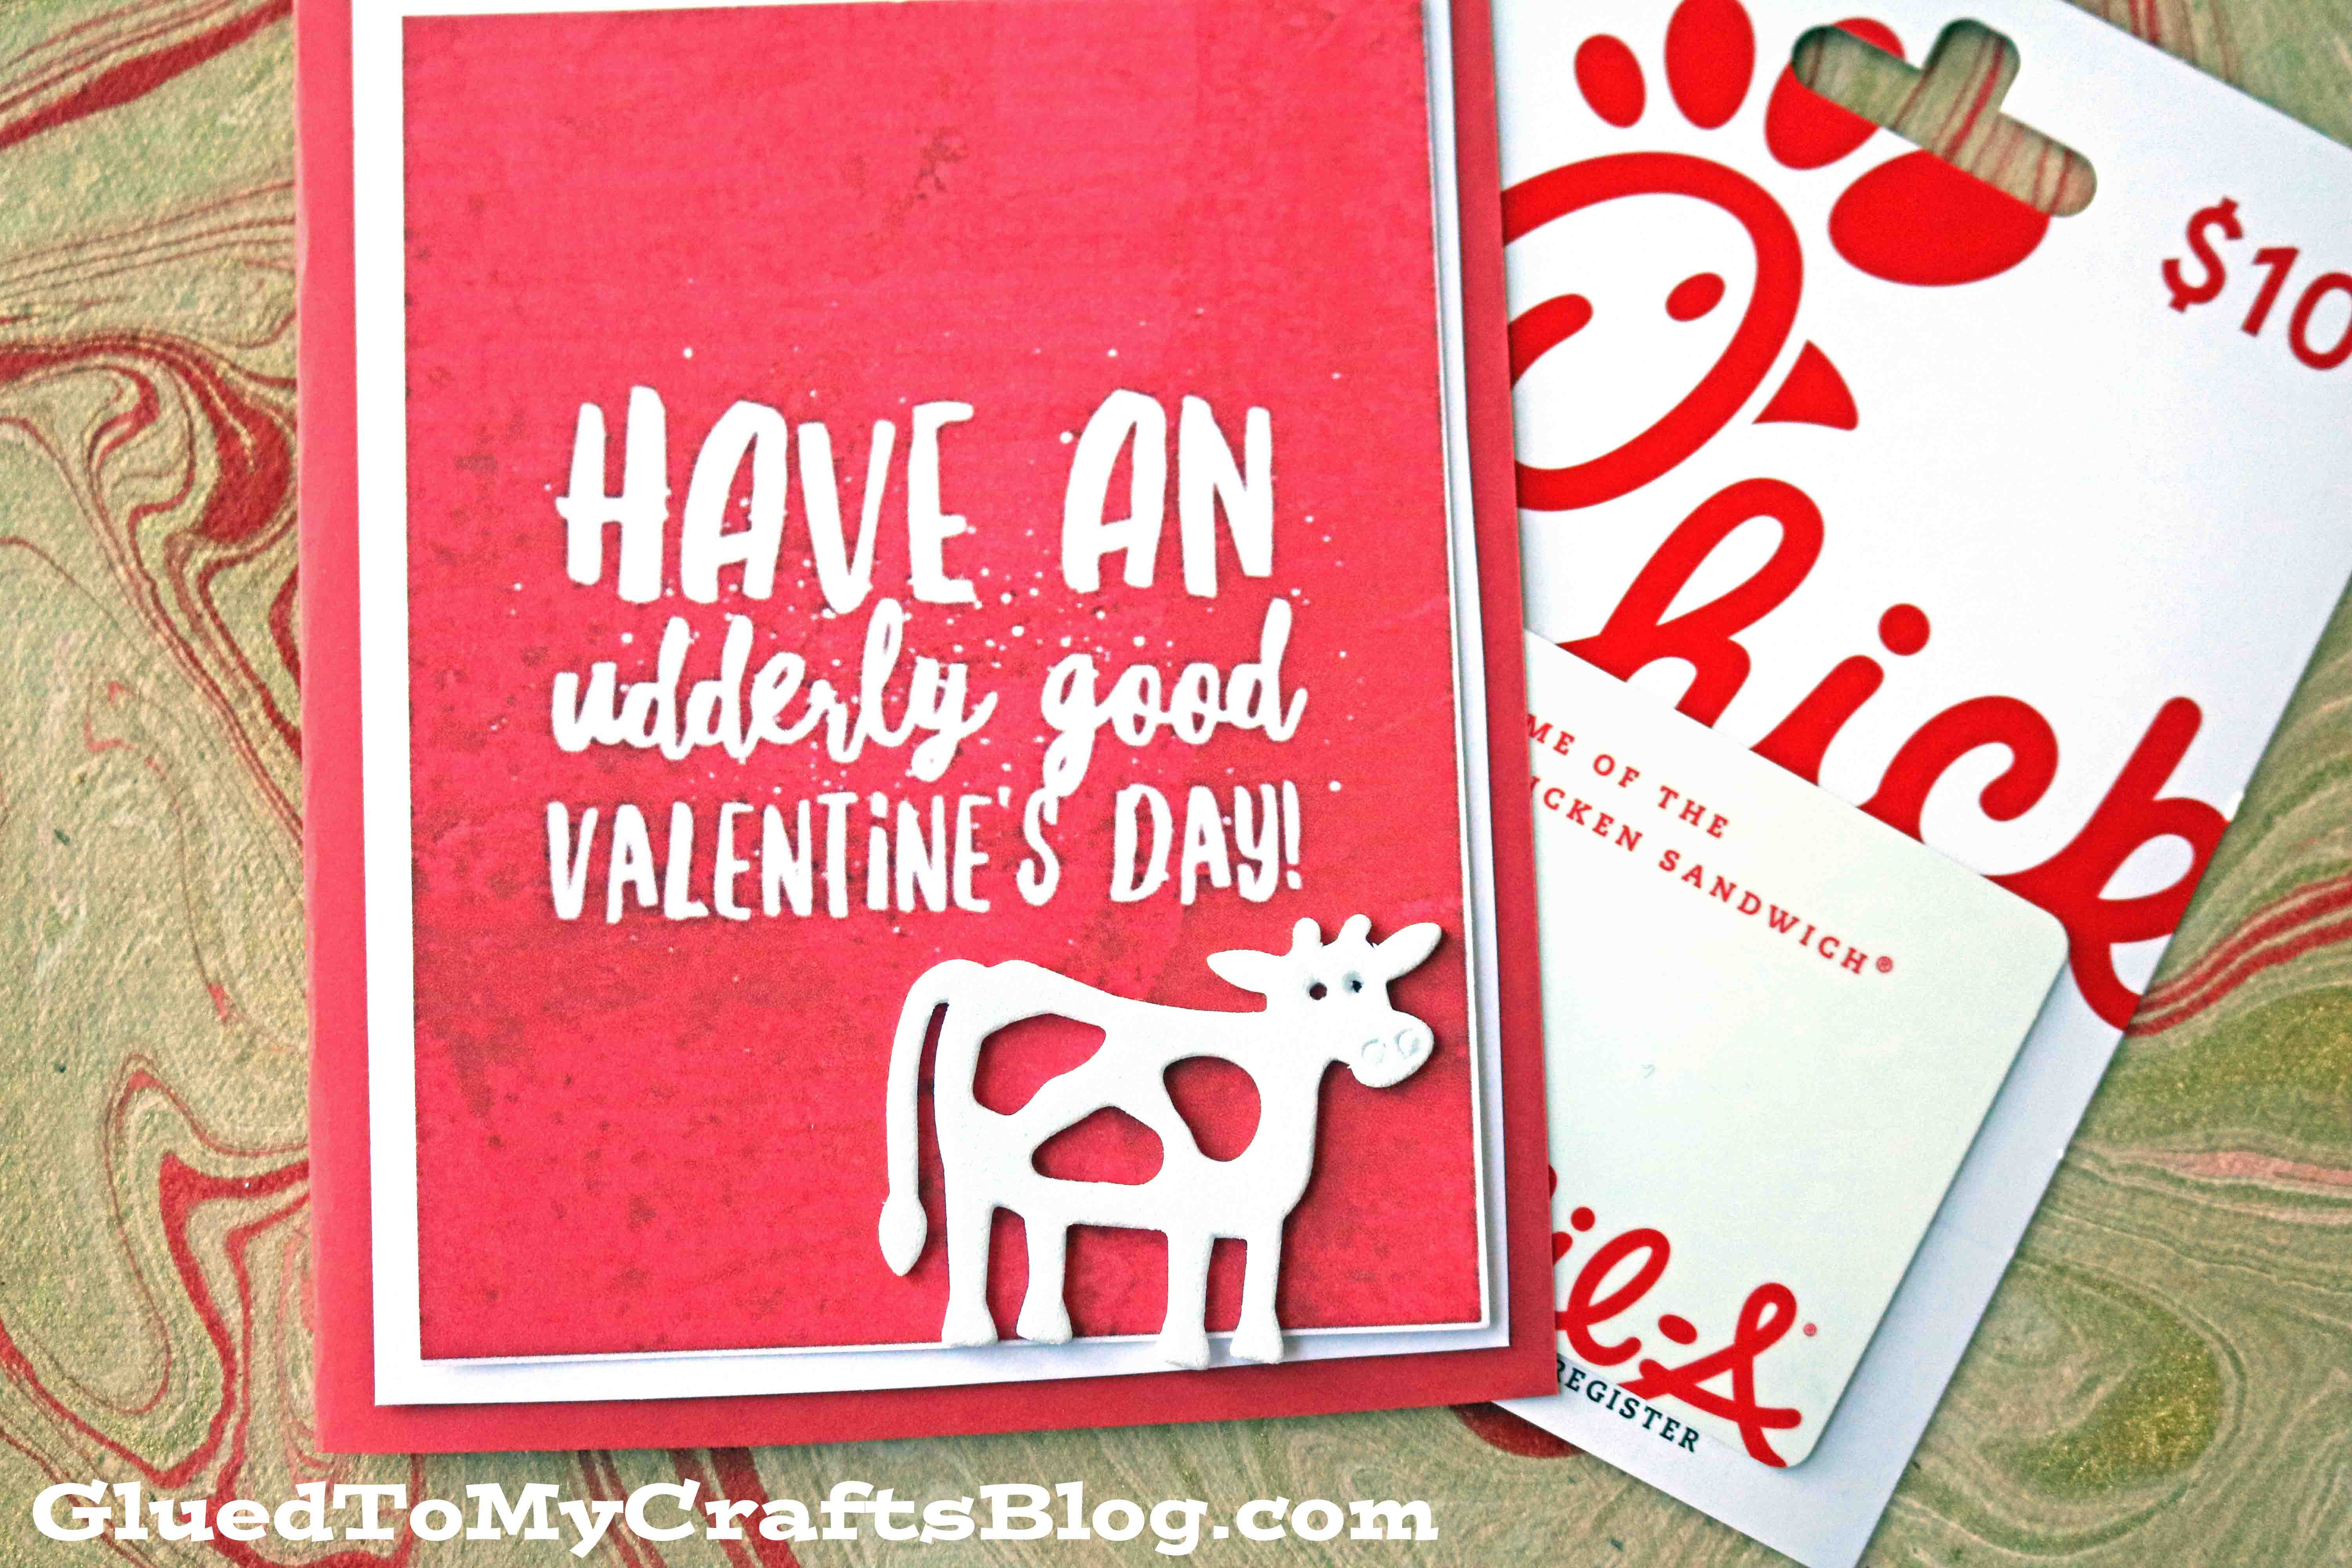 Udderly Good Valentines Day Chick Fil A Gift Idea